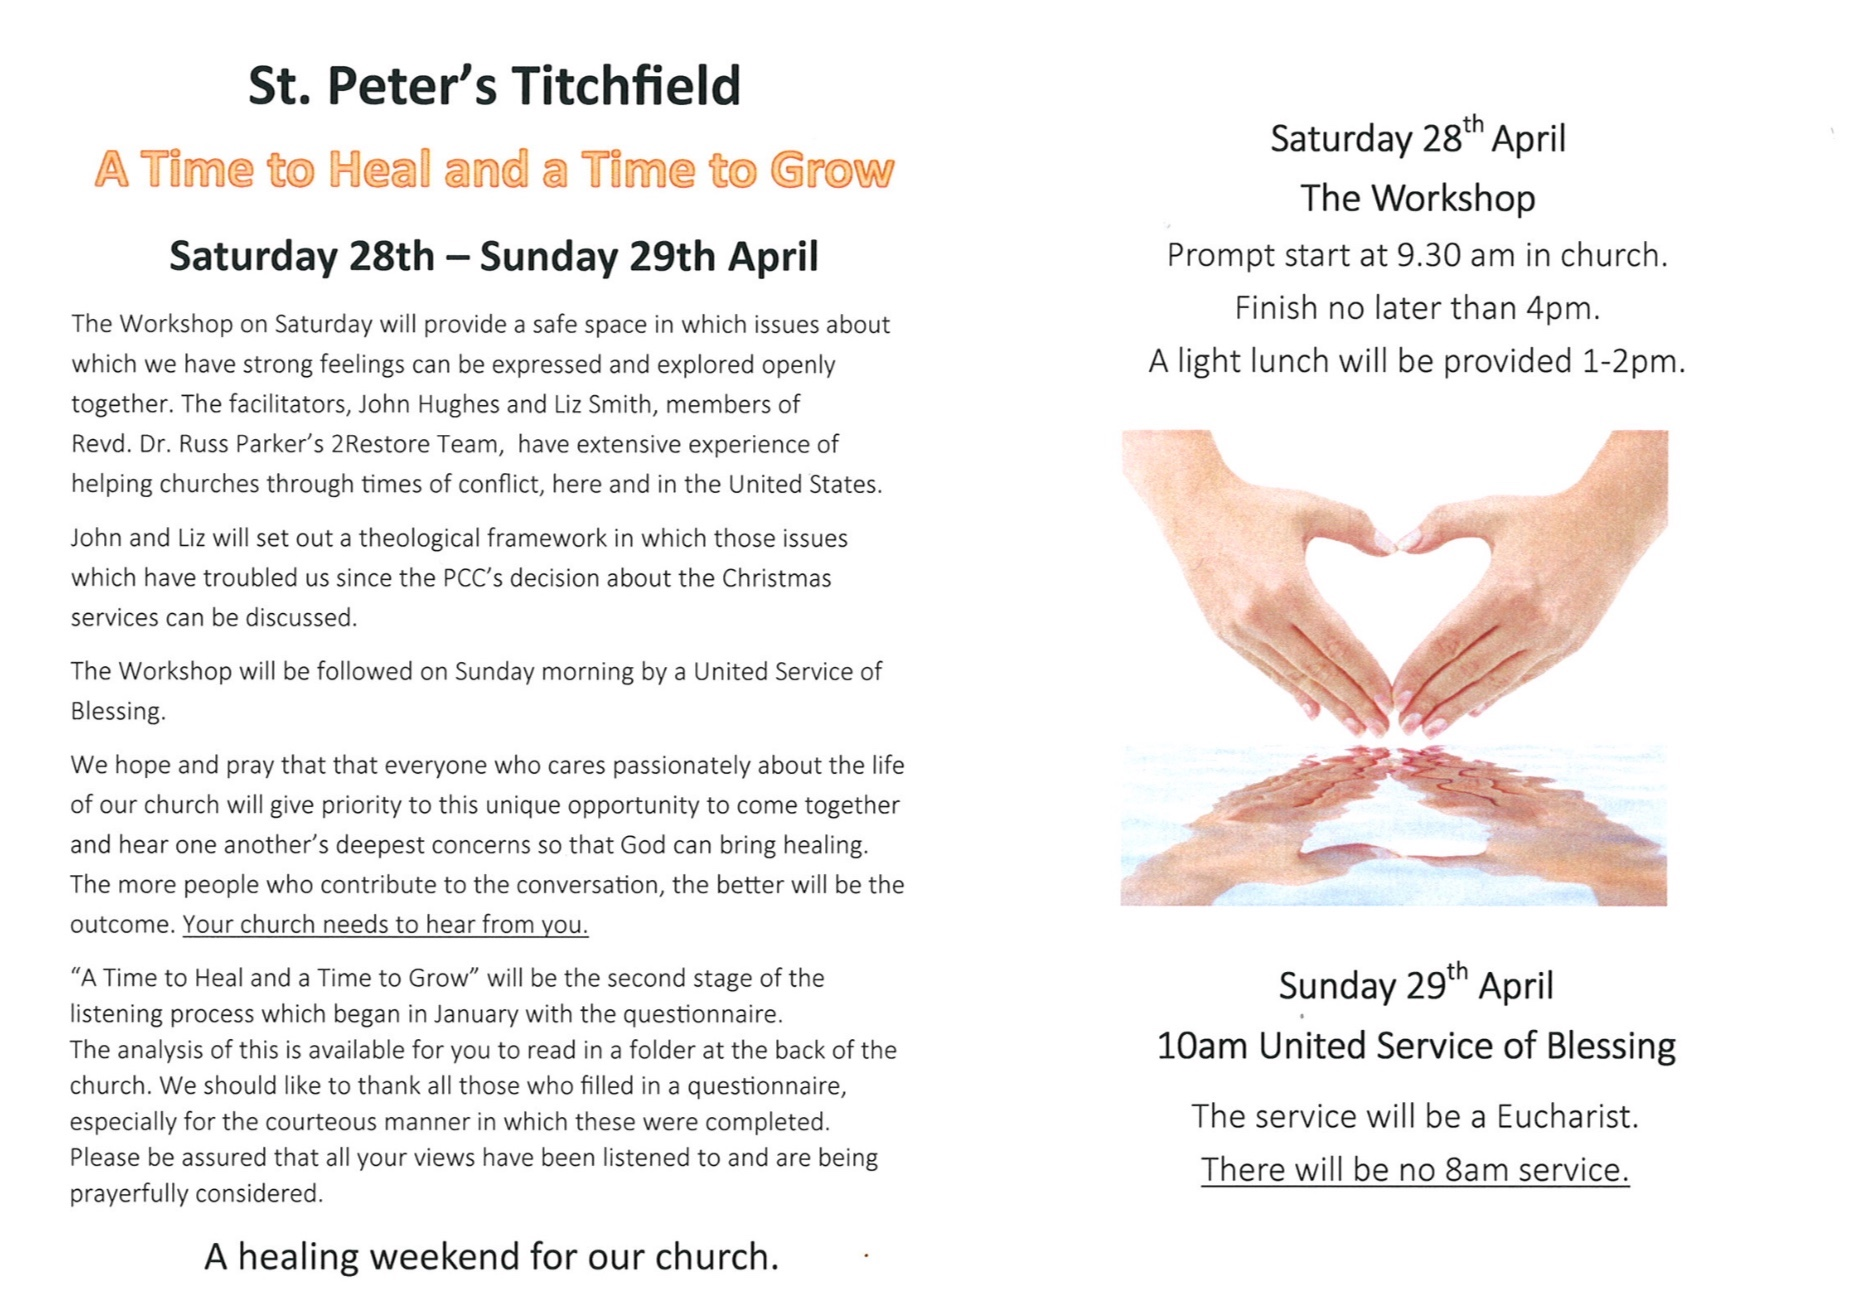 The flyer issued by the church